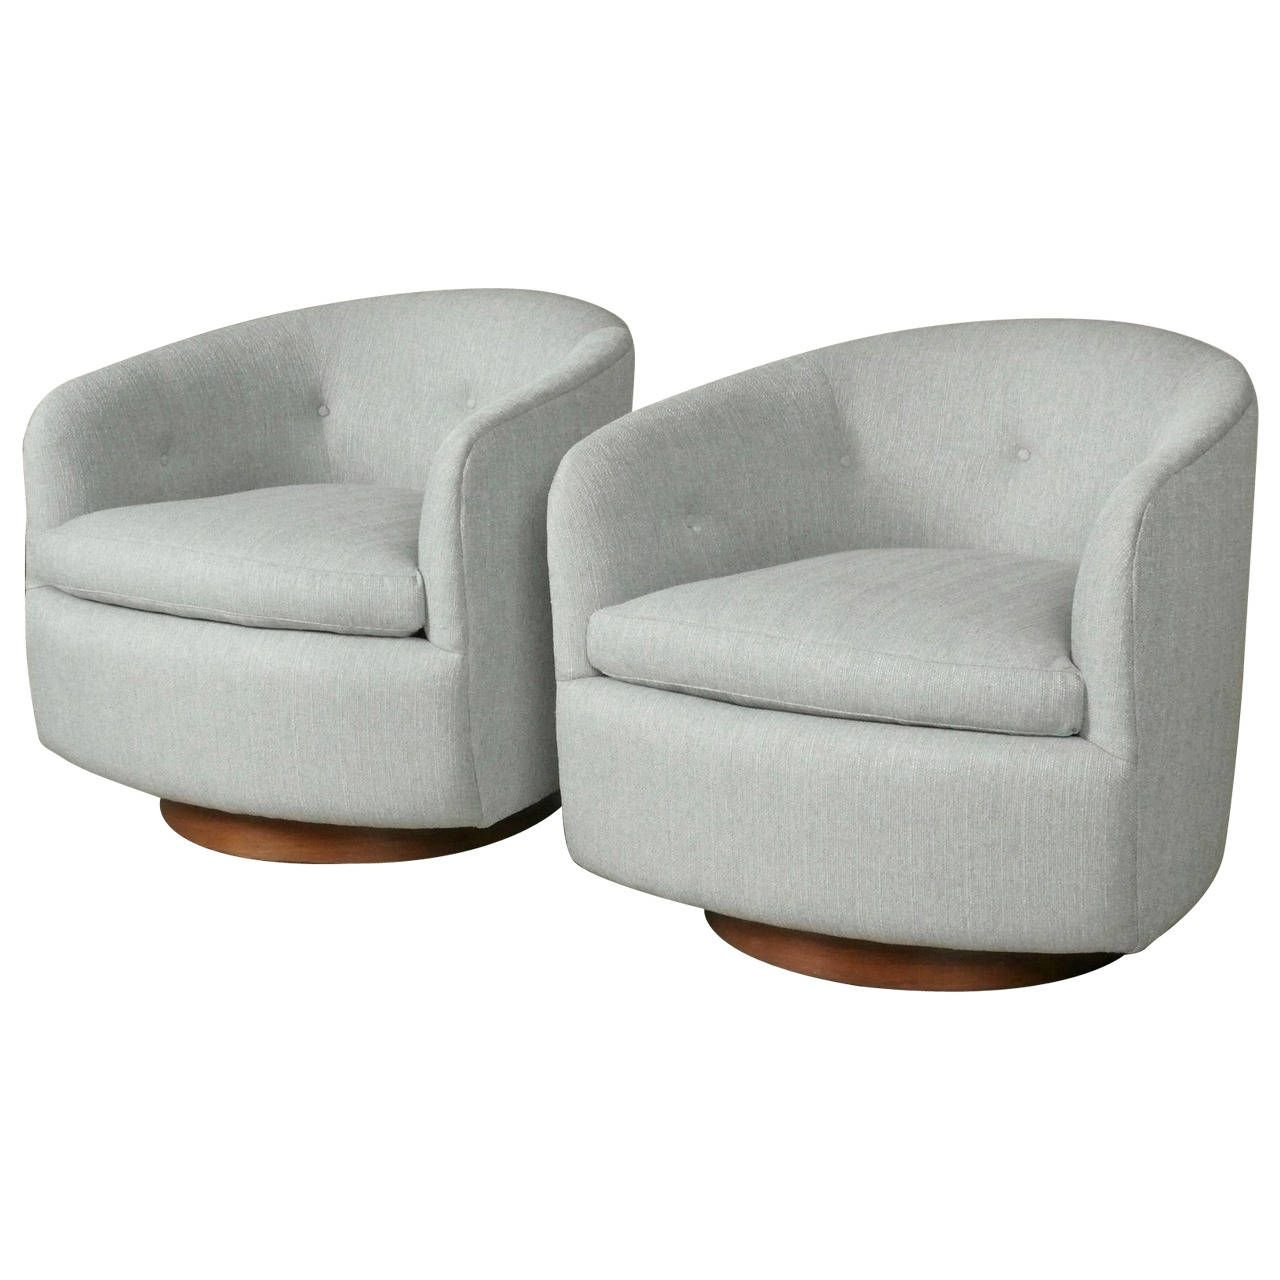 of archive swivel tub base chairs with chairsmaud pair maud sold chair